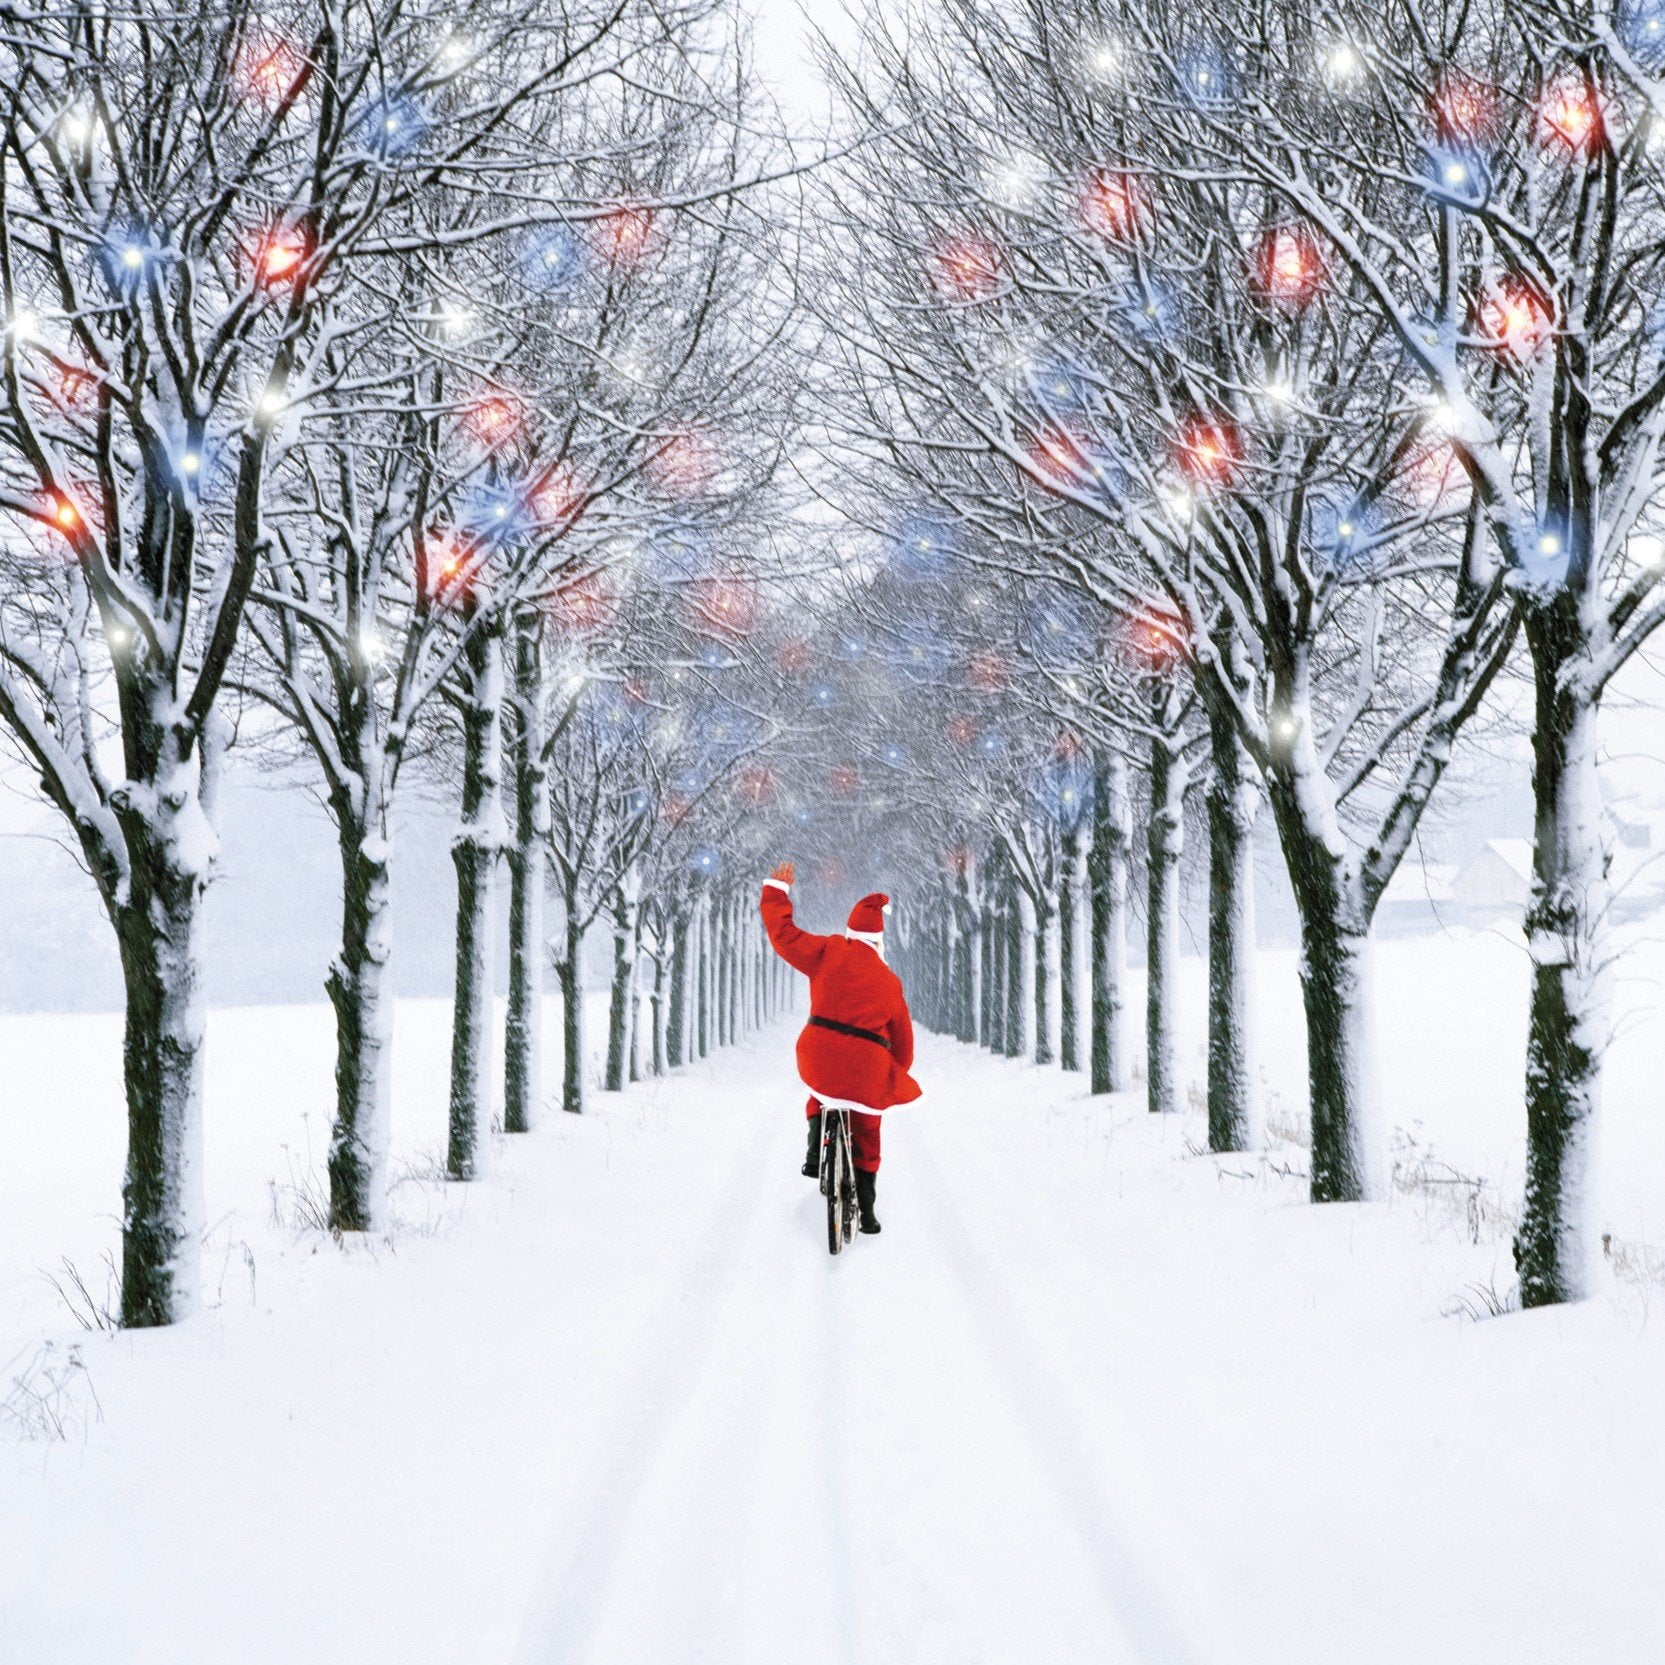 Christmas Card: Snowy Avenue